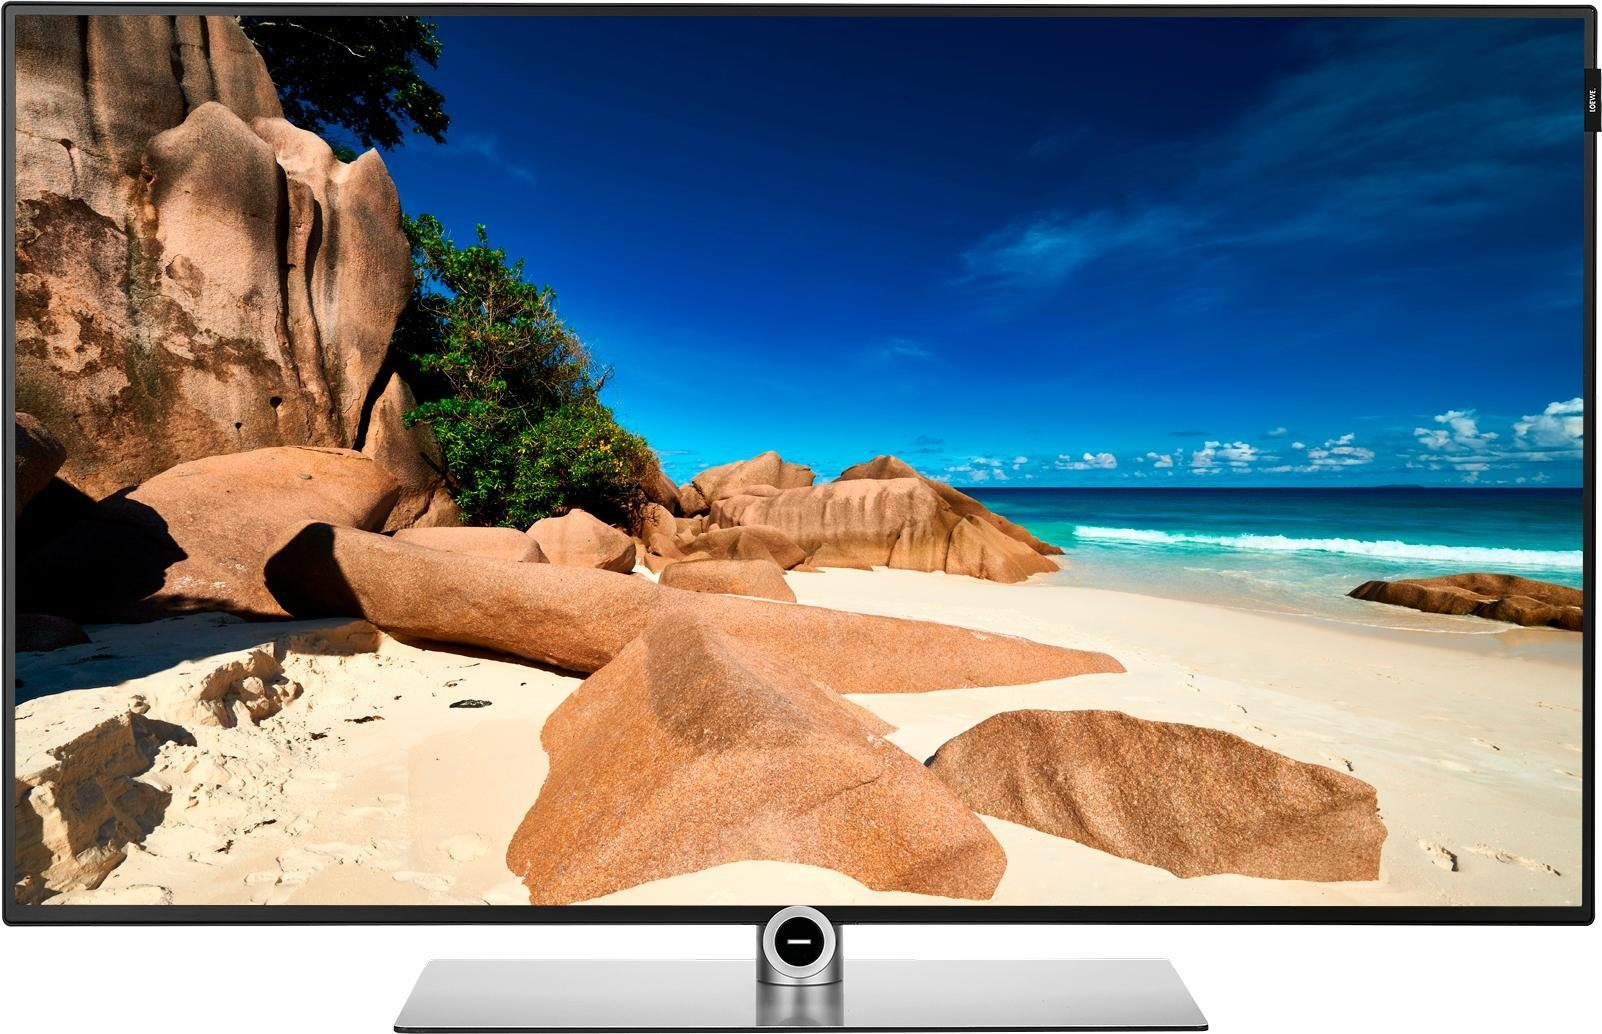 Loewe One 40, LED Fernseher, 102 cm (40 Zoll), 1080p (Full HD), Smart-TV